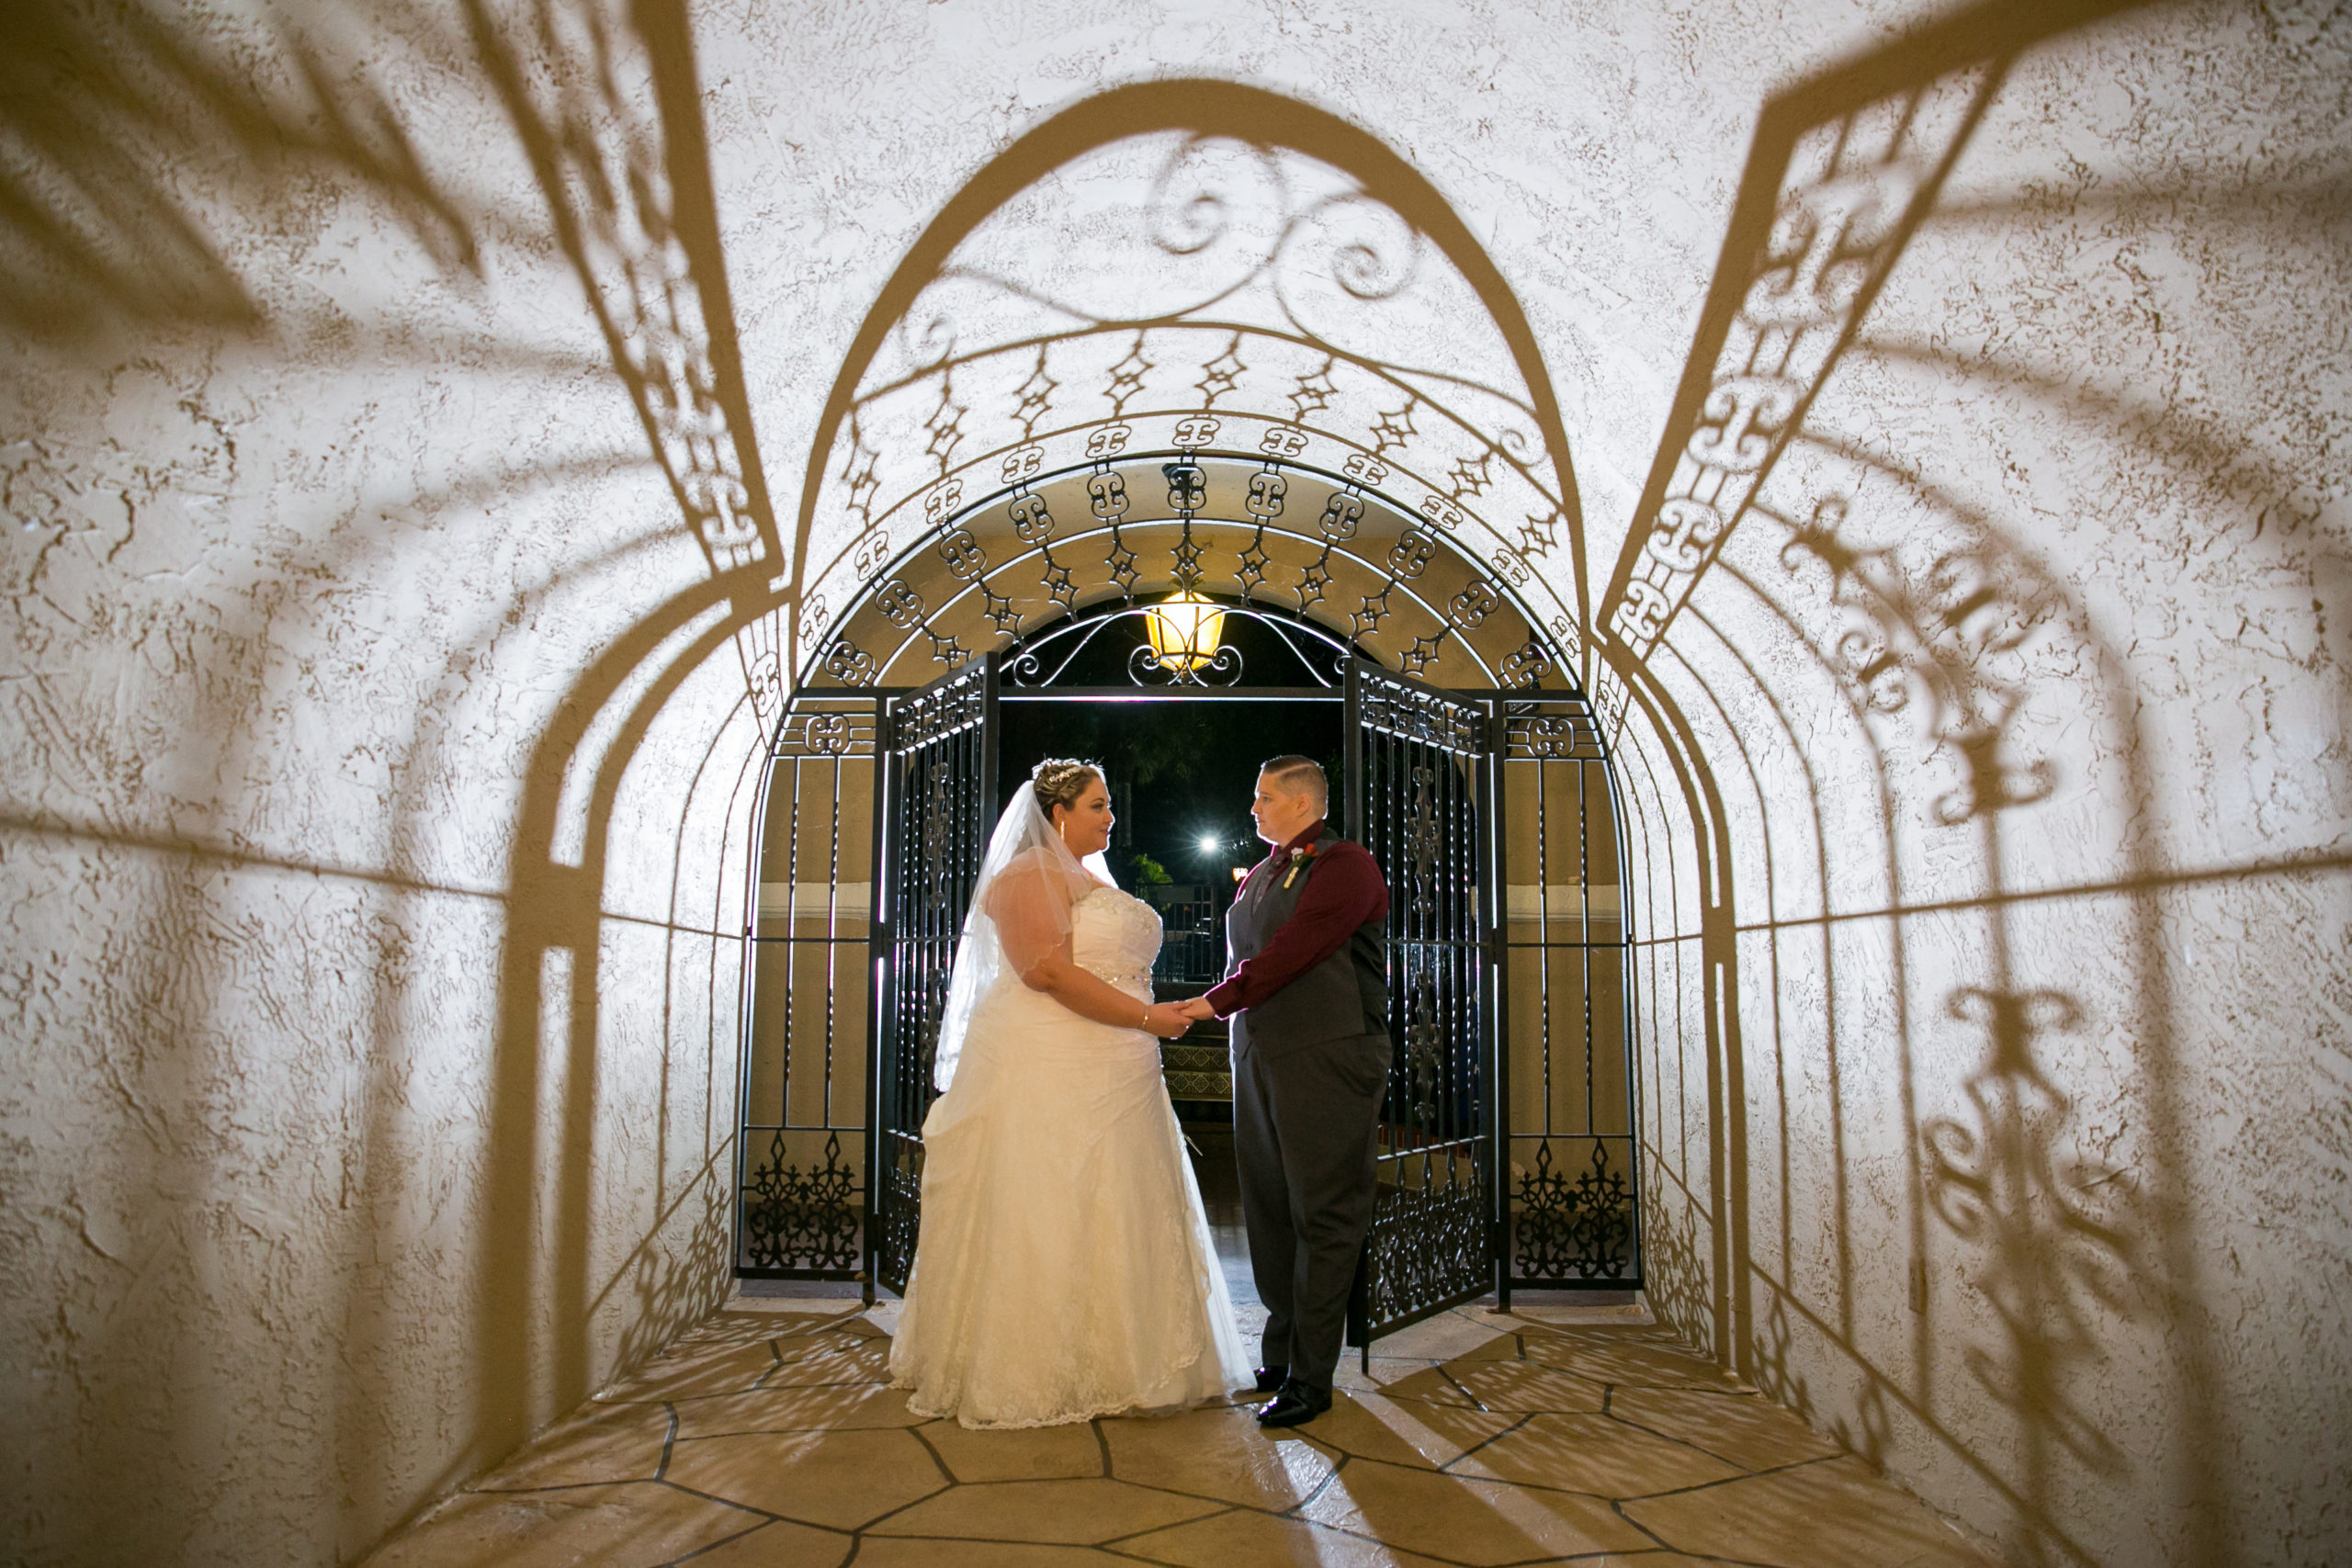 Two Brides at Iron Gates with Shadows